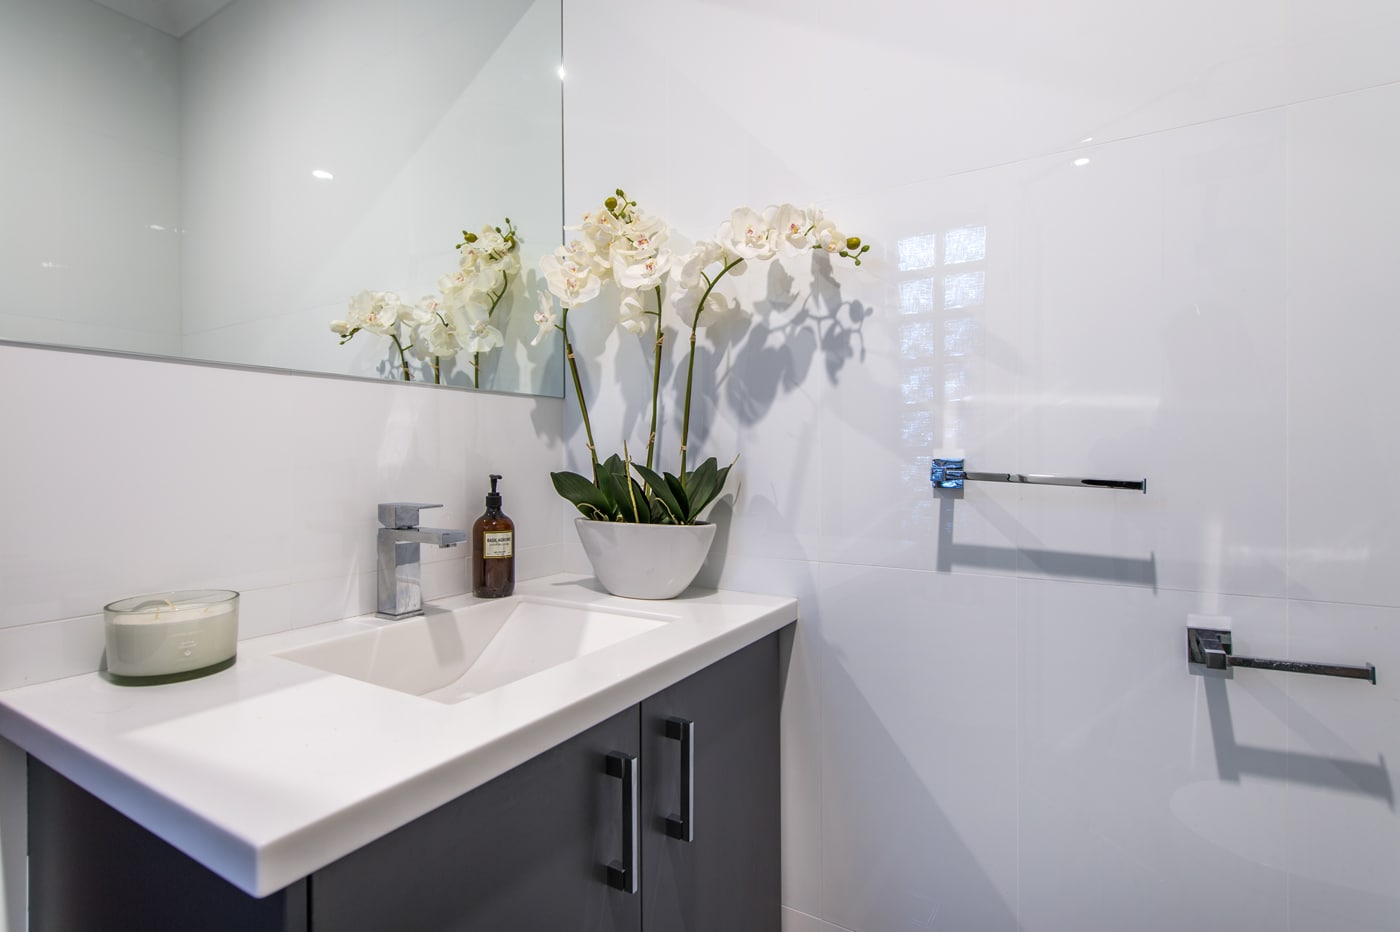 Veejay 39 s bathroom renovations designs osborne park for Bathrooms osborne park